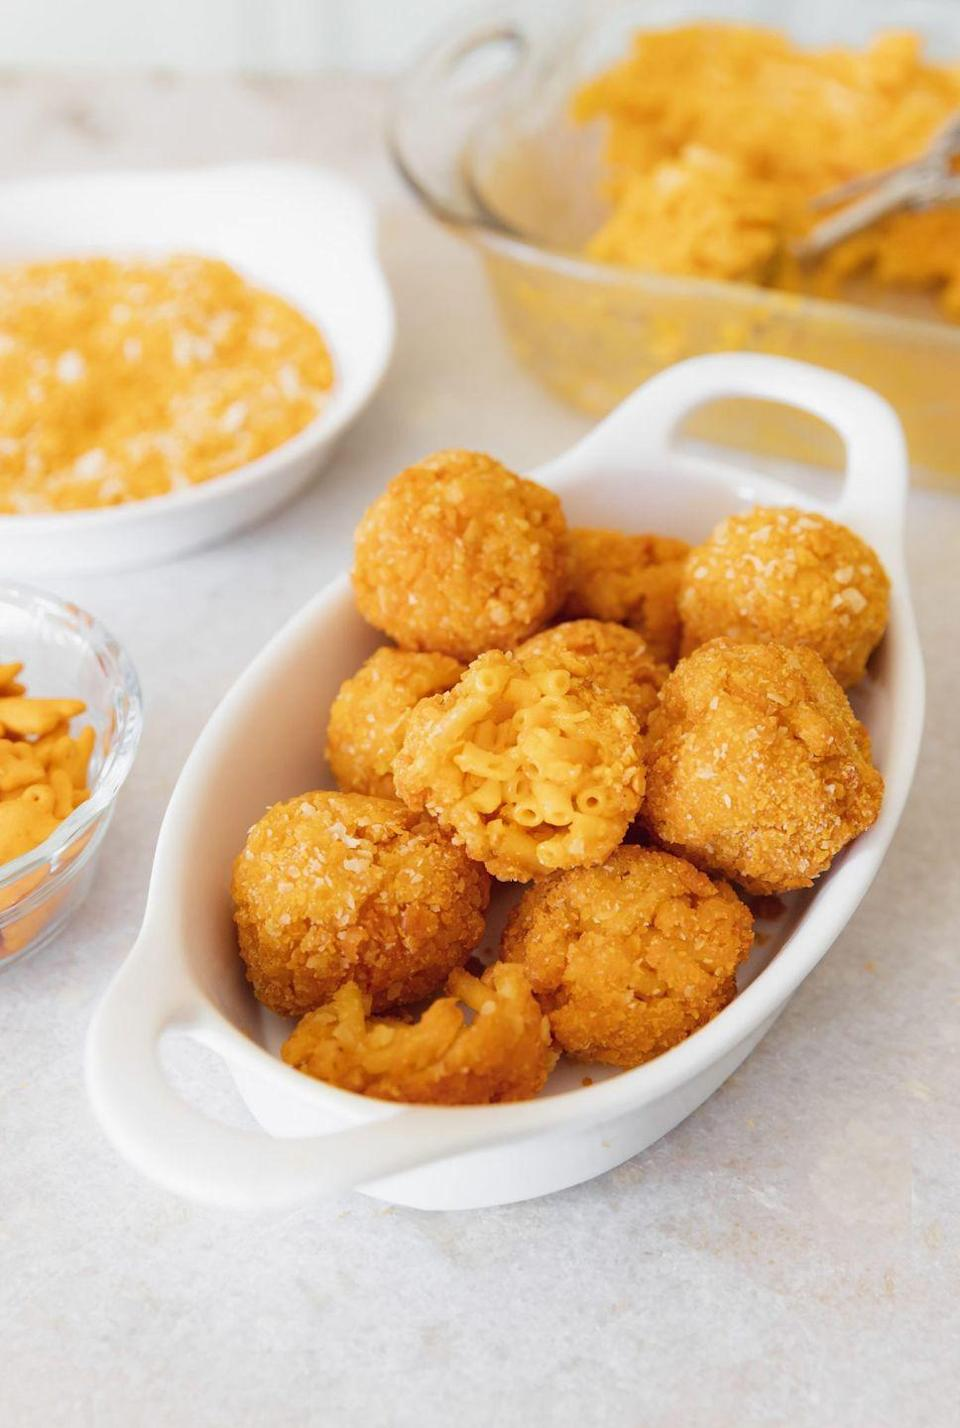 """<p>Fried mac and cheese bites are a fun appetizer, and they're super easy to make when you start with a boxed mix. The coating in this version is crushed cheese crackers. Yum!</p><p><strong>Get the recipe at <a href=""""https://www.texaztaste.com/annies-macaroni-and-cheese-arancini-recipe/"""" rel=""""nofollow noopener"""" target=""""_blank"""" data-ylk=""""slk:TEXAZ TASTE"""" class=""""link rapid-noclick-resp"""">TEXAZ TASTE</a>. </strong></p>"""